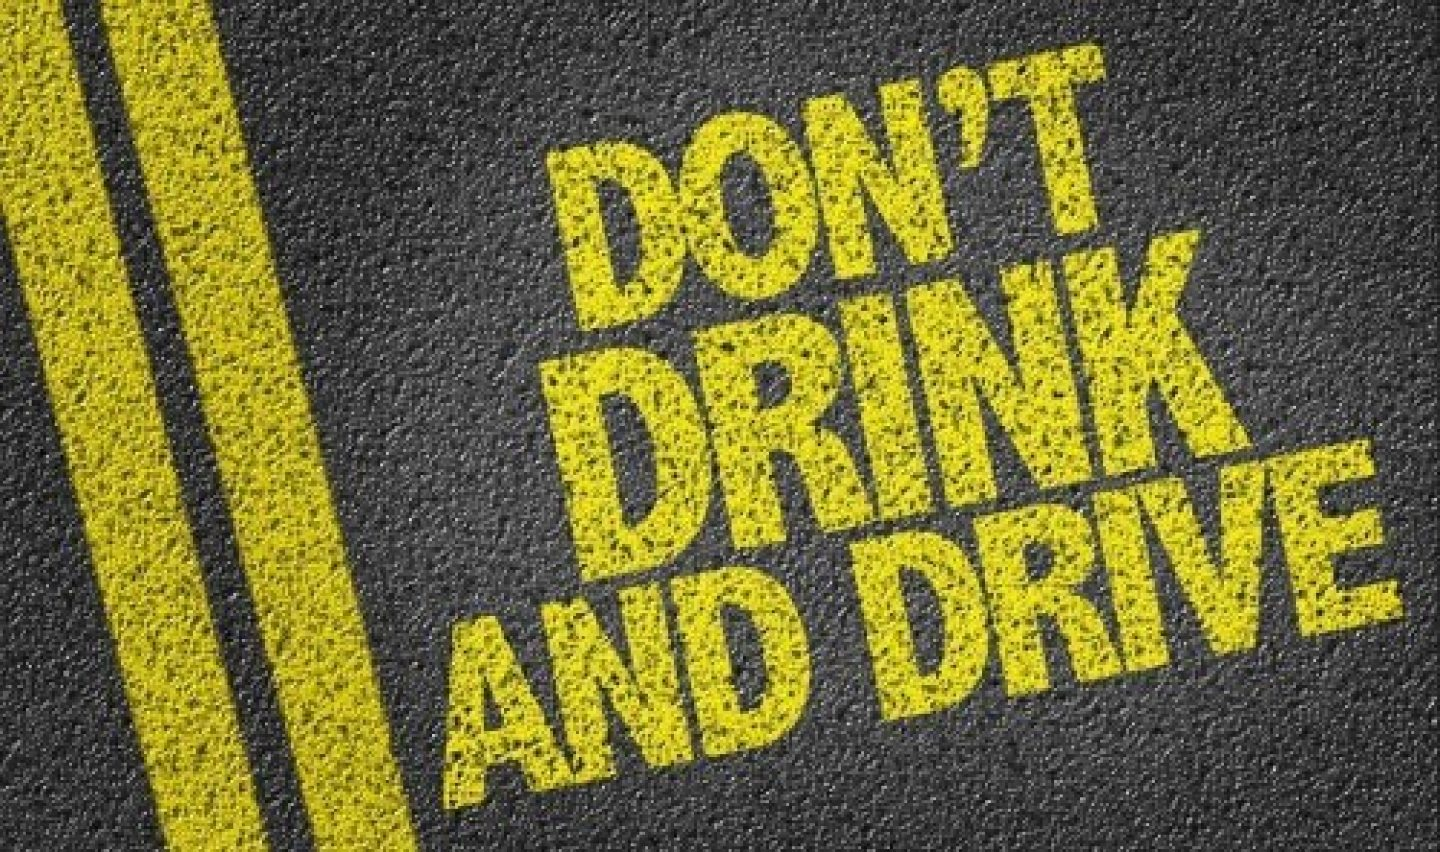 Don't drink and drive message